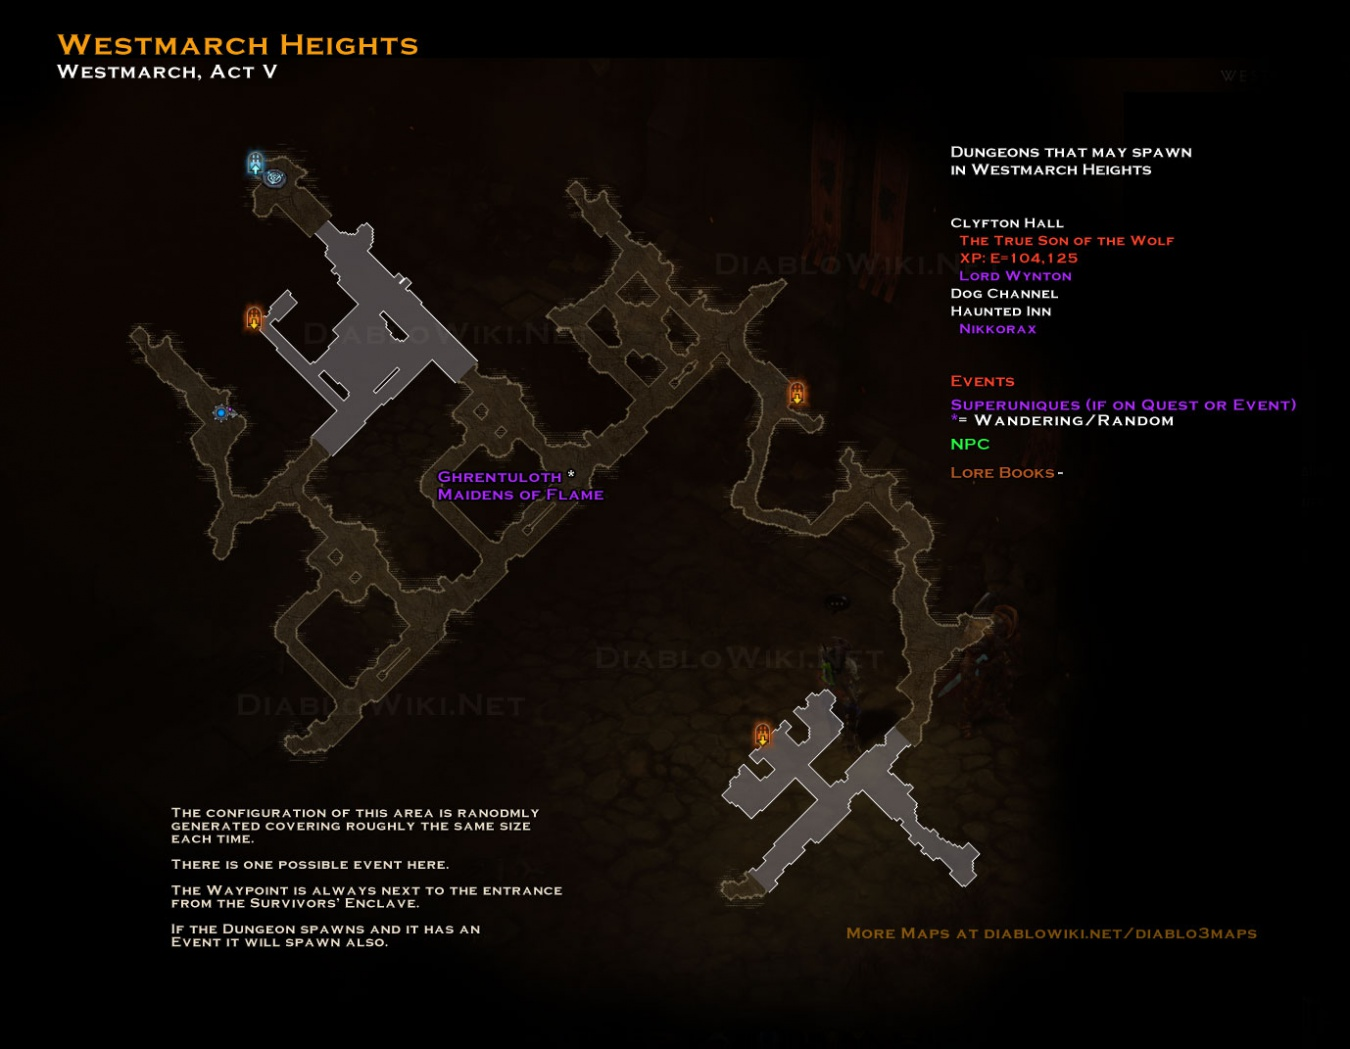 Westmarch-heights-map2.jpg